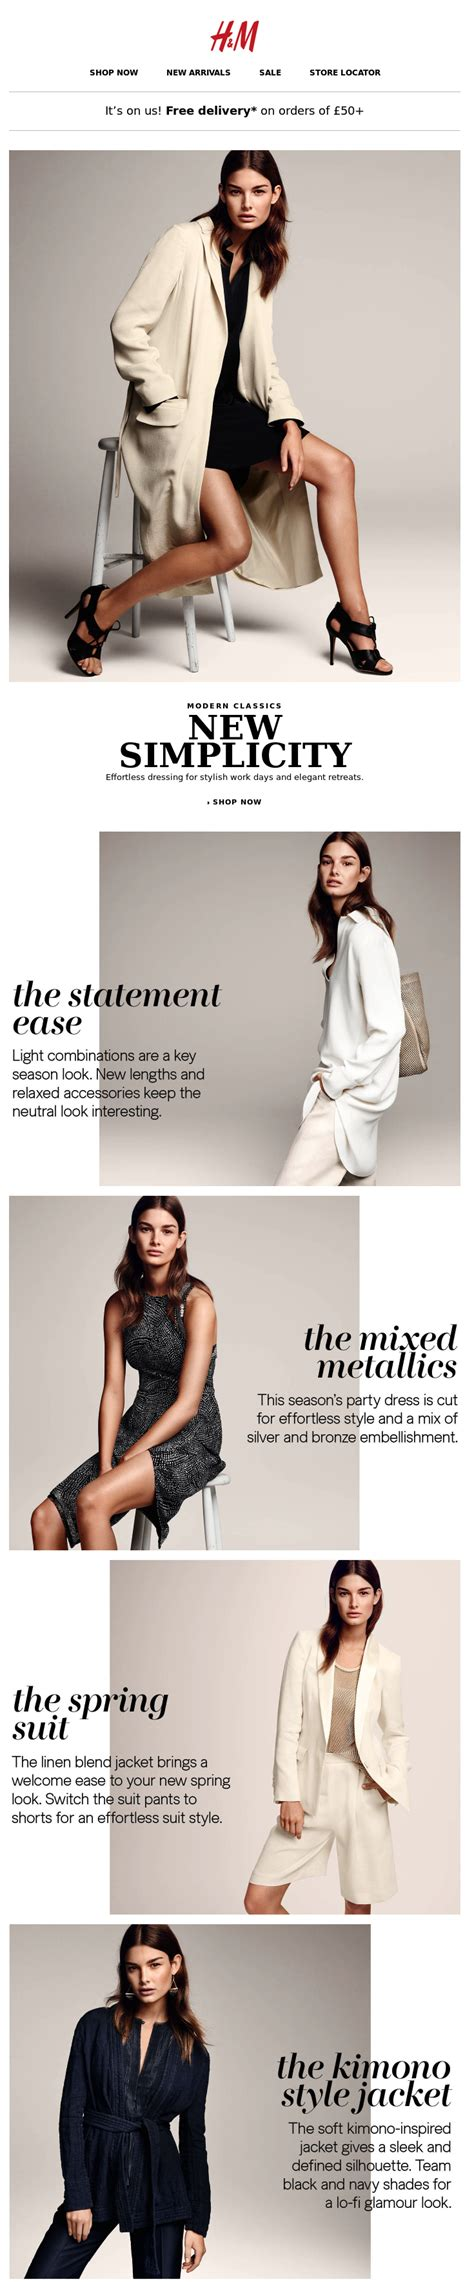 38 best images about fashion newsletters on zara home email newsletter templates the 5 things zara and h m successful edited